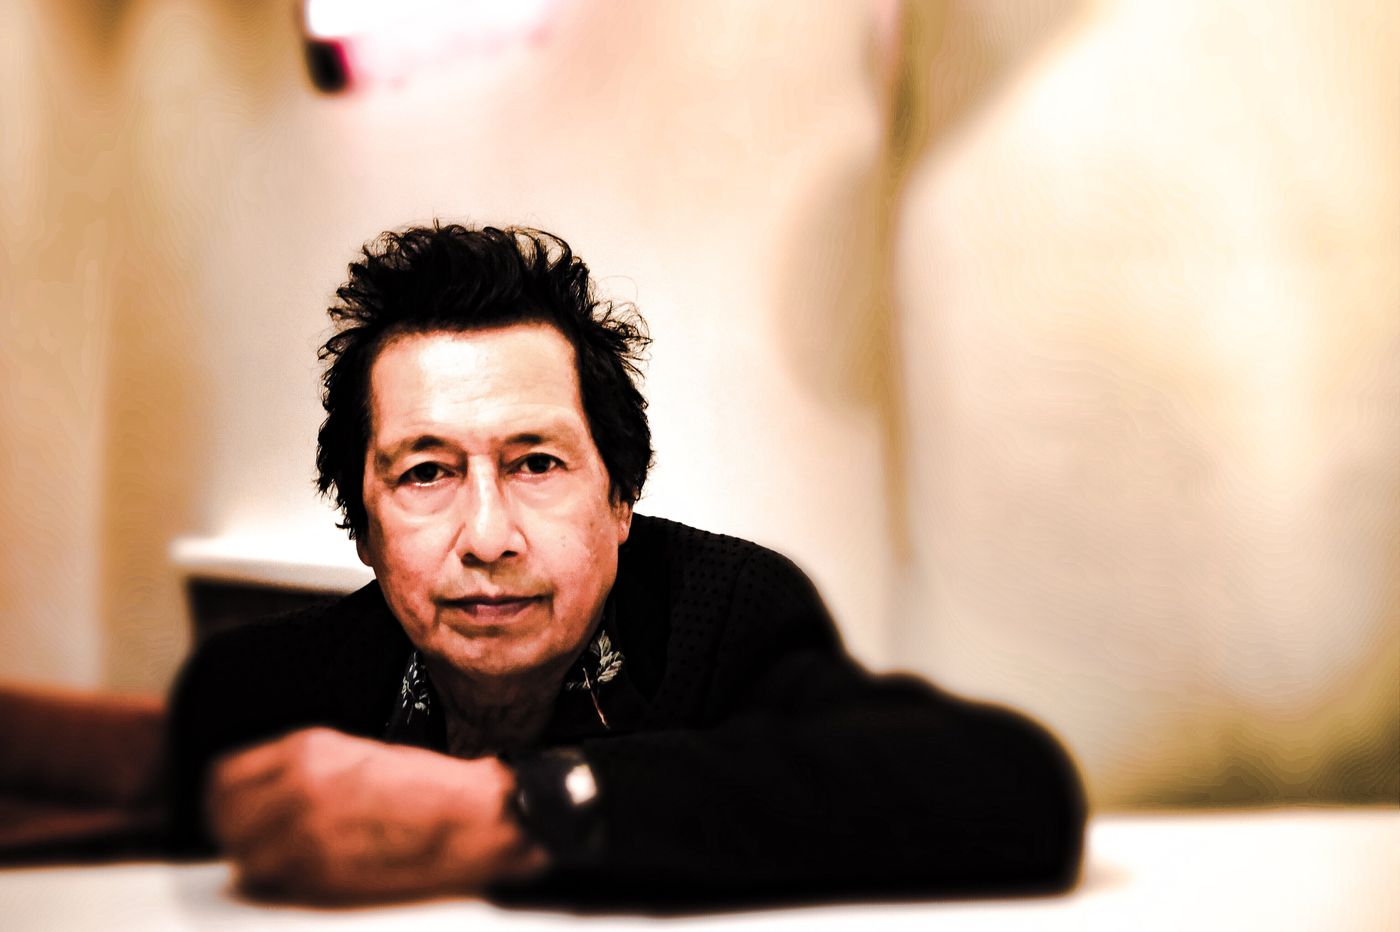 Alejandro Escovedo brings timely immigrant songs to Philadelphia with 'The Crossing'